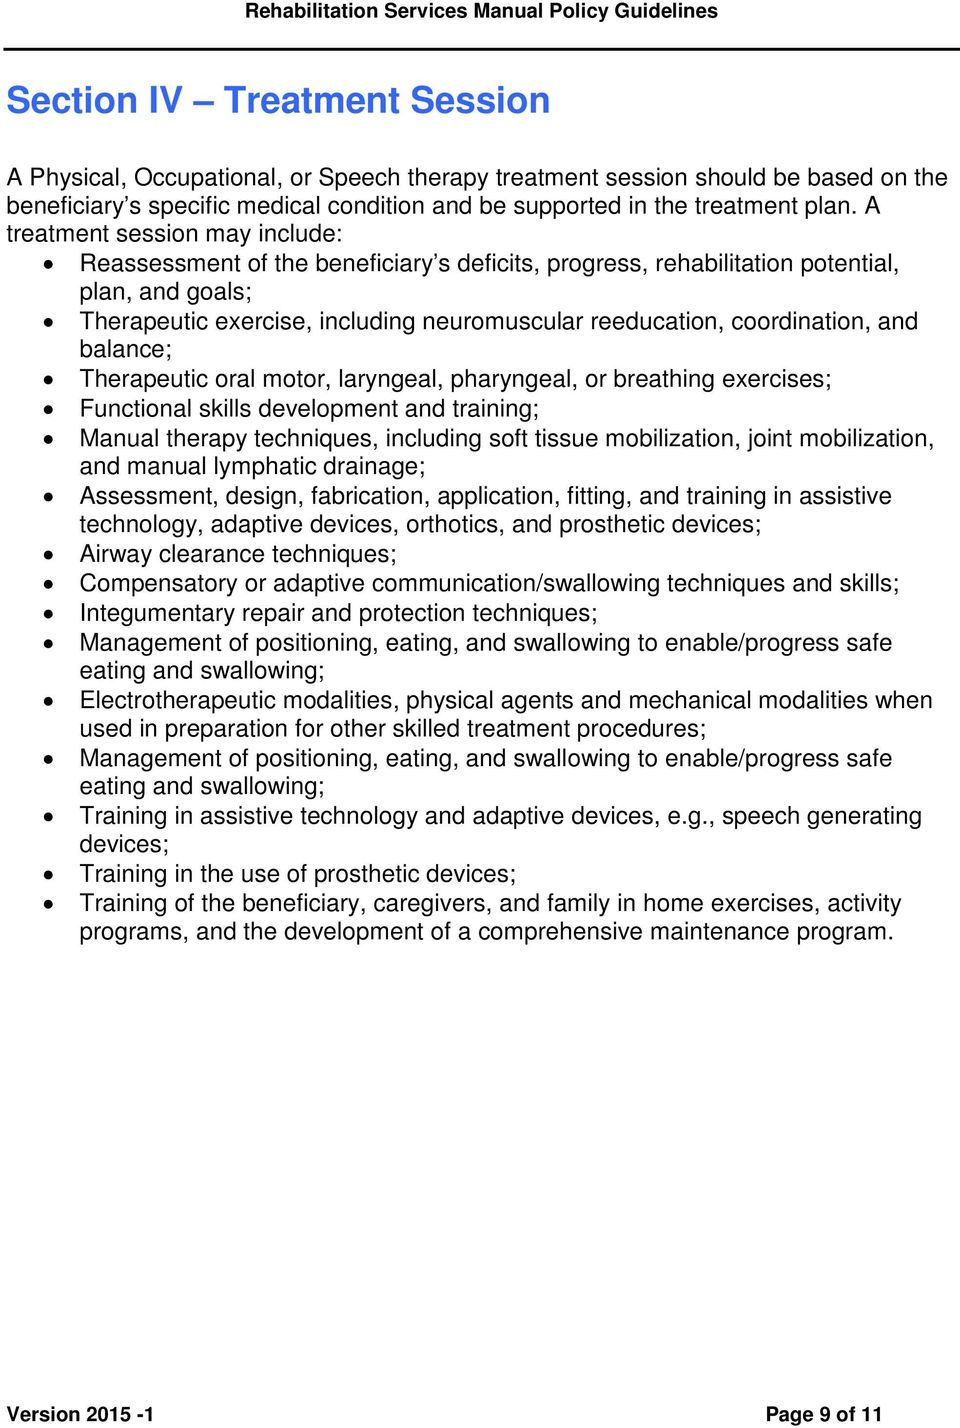 coordination, and balance; Therapeutic oral motor, laryngeal, pharyngeal, or breathing exercises; Functional skills development and training; Manual therapy techniques, including soft tissue